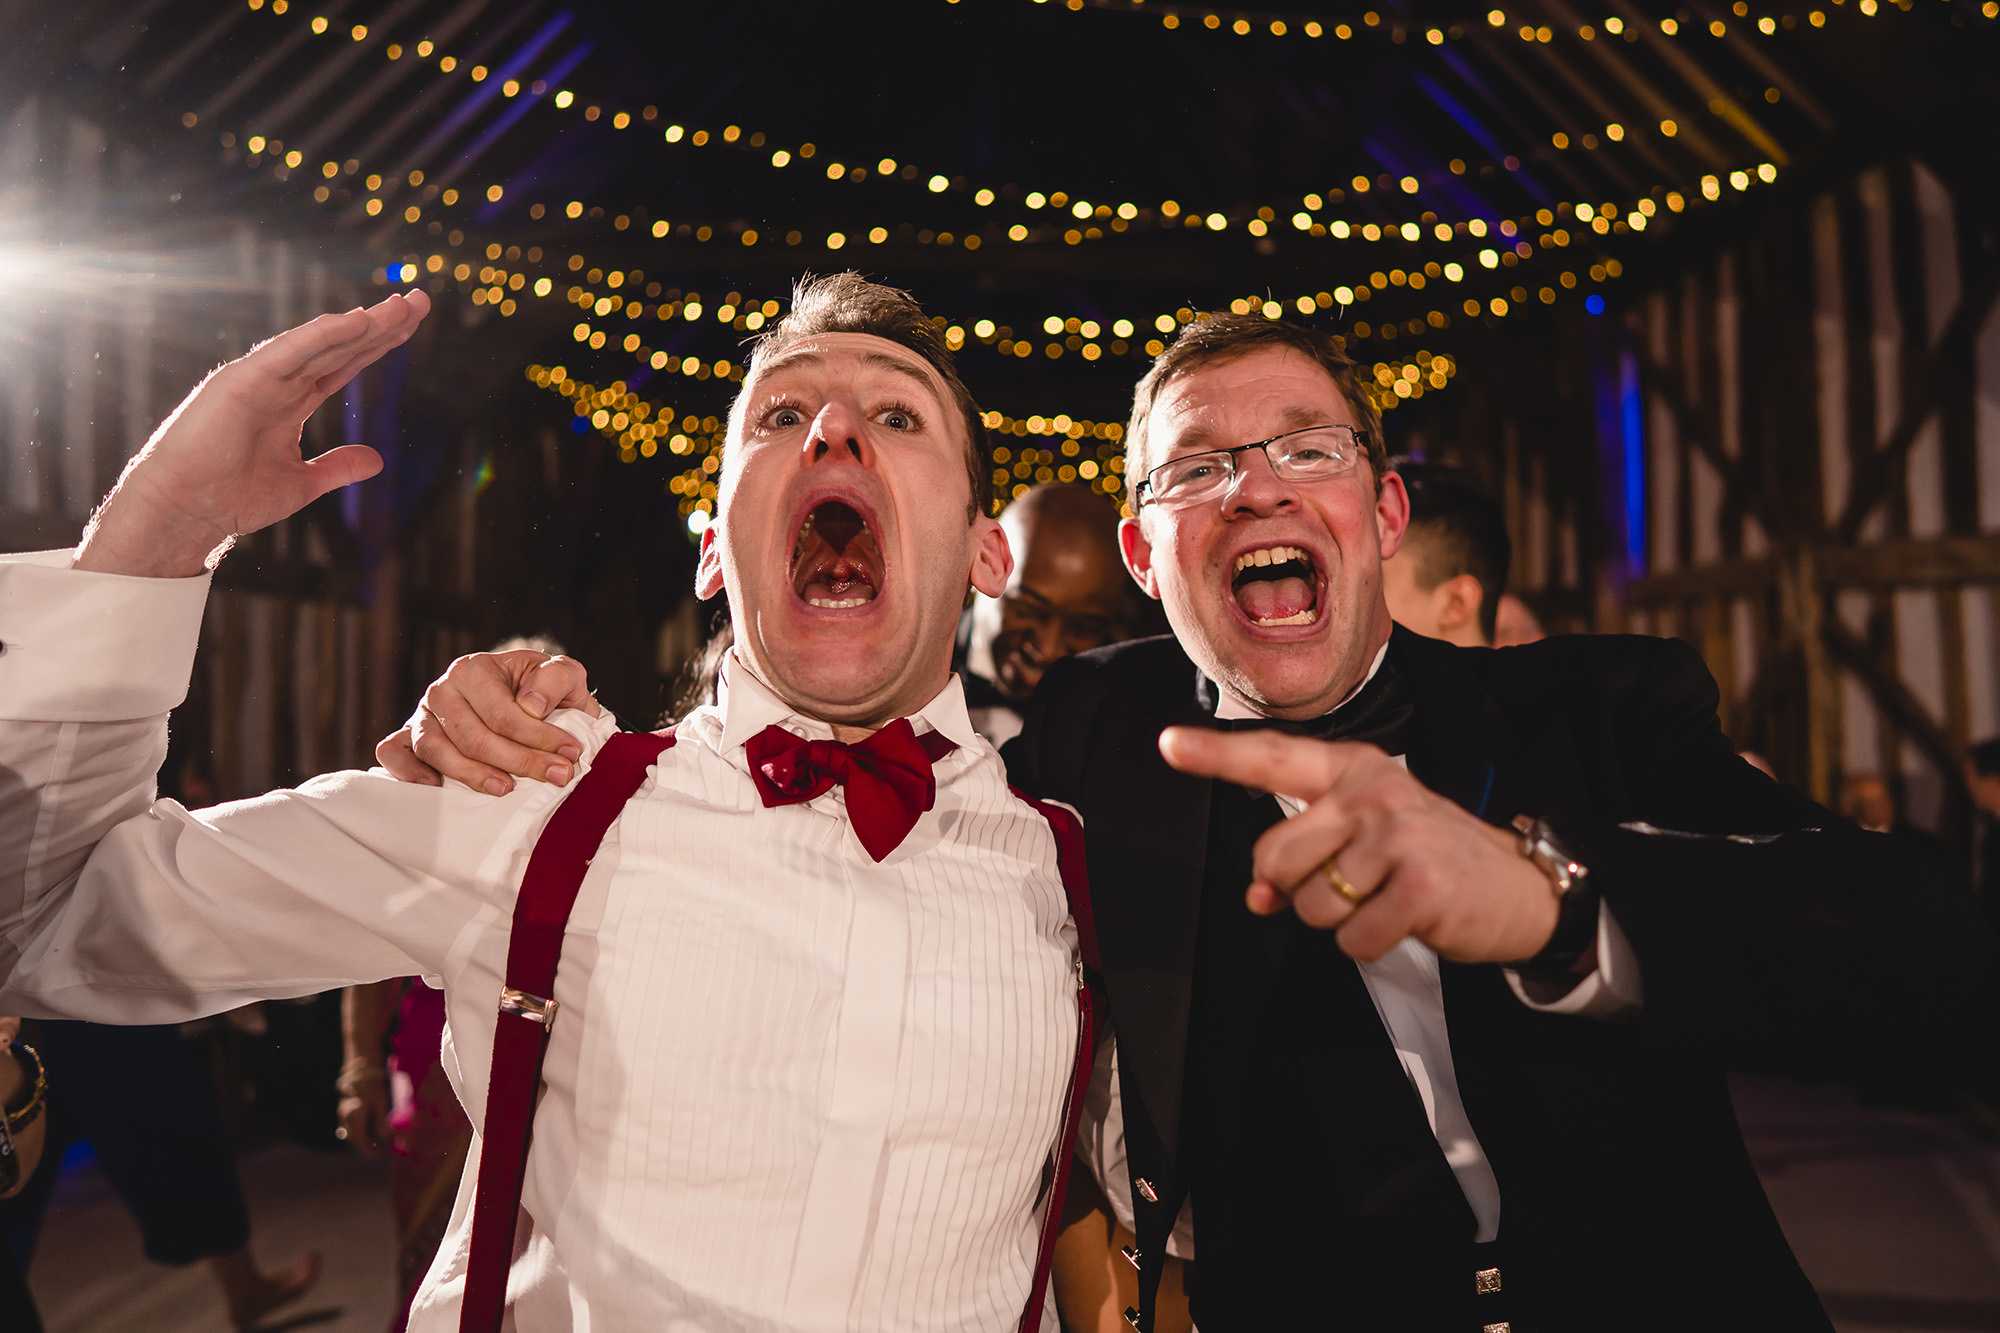 groom and usher partying at wedding reception